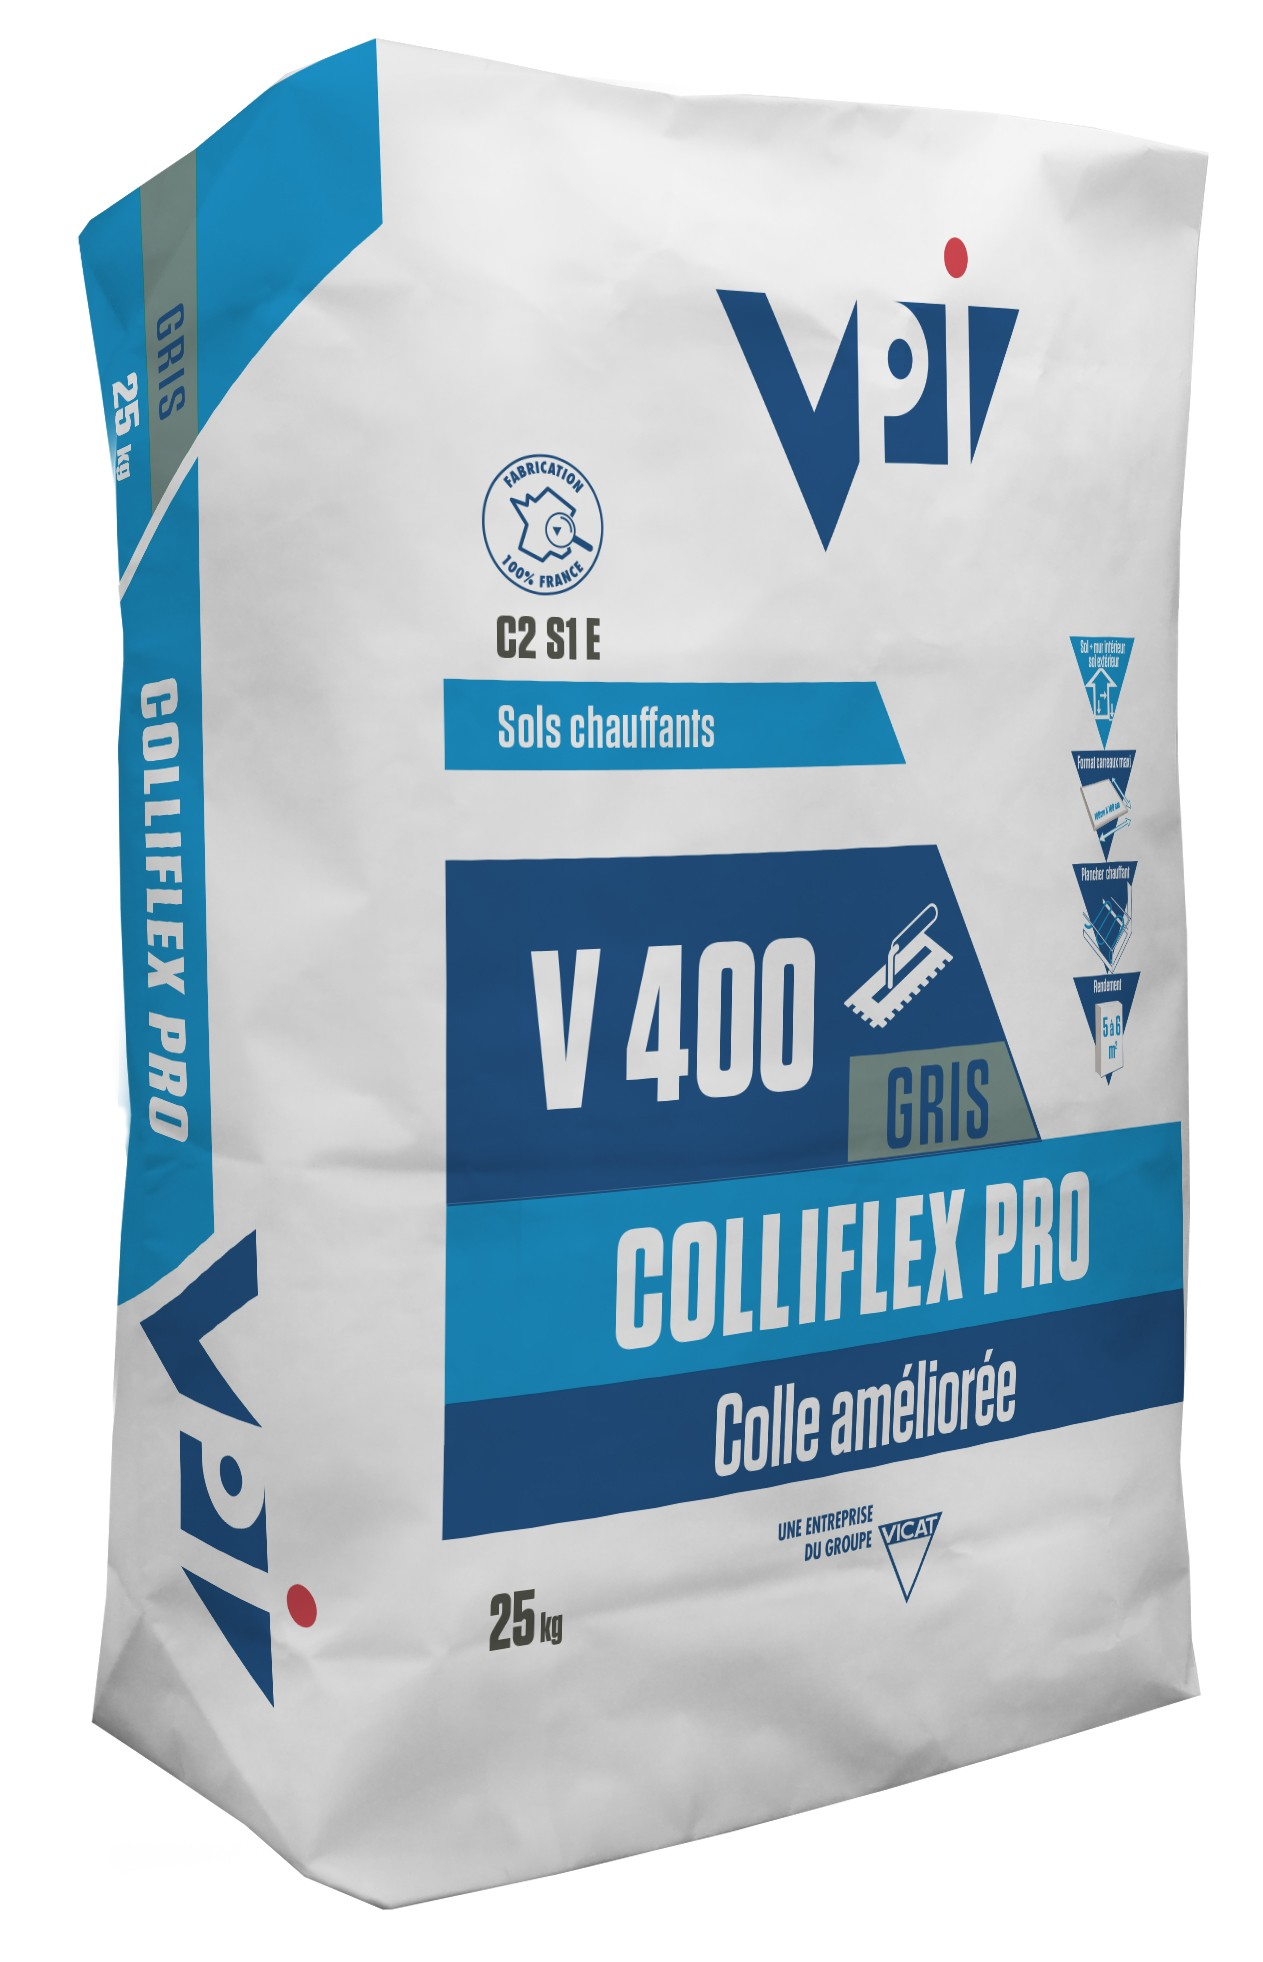 Colle carrelage - COLLIFLEX ECO 25 KG - Photo principale